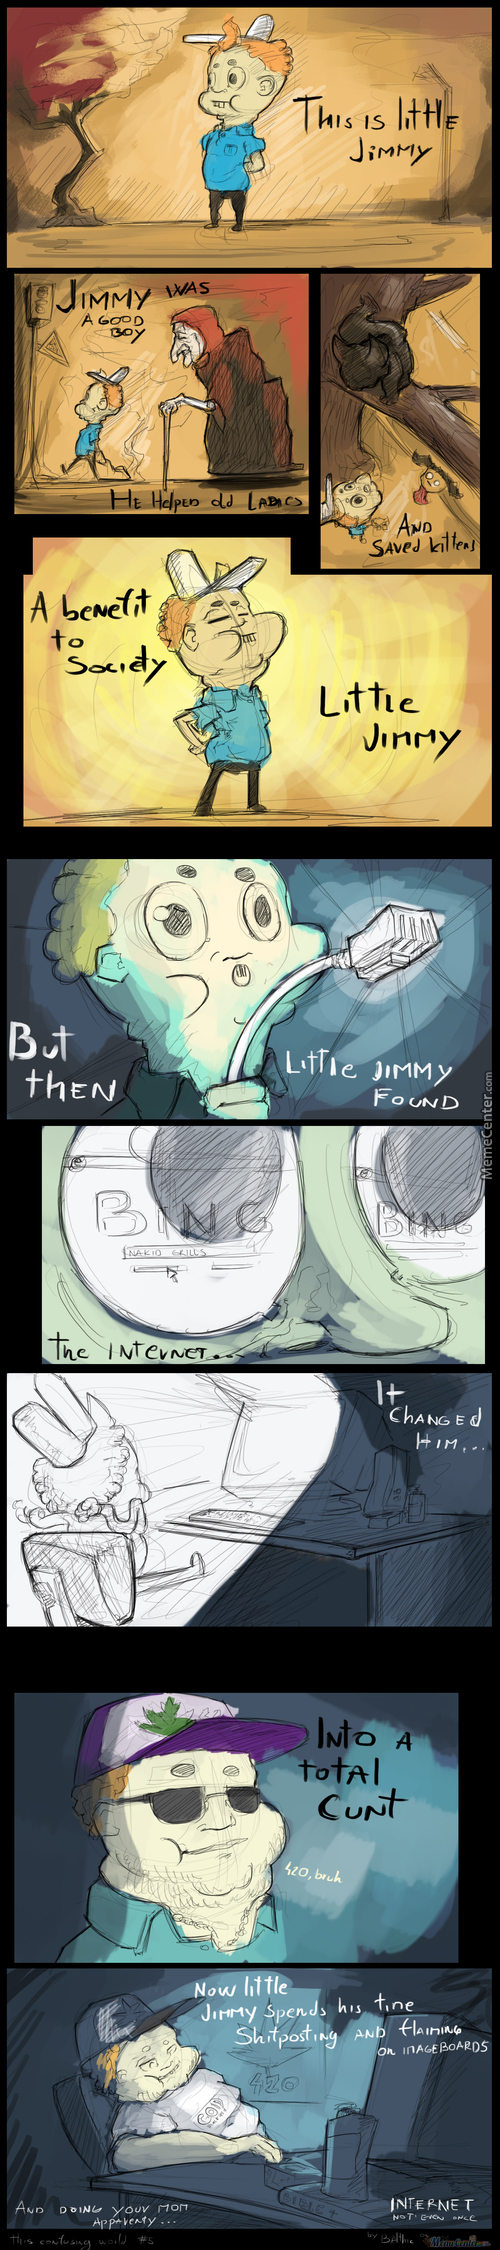 The Sad Tale Of Little Jimmy